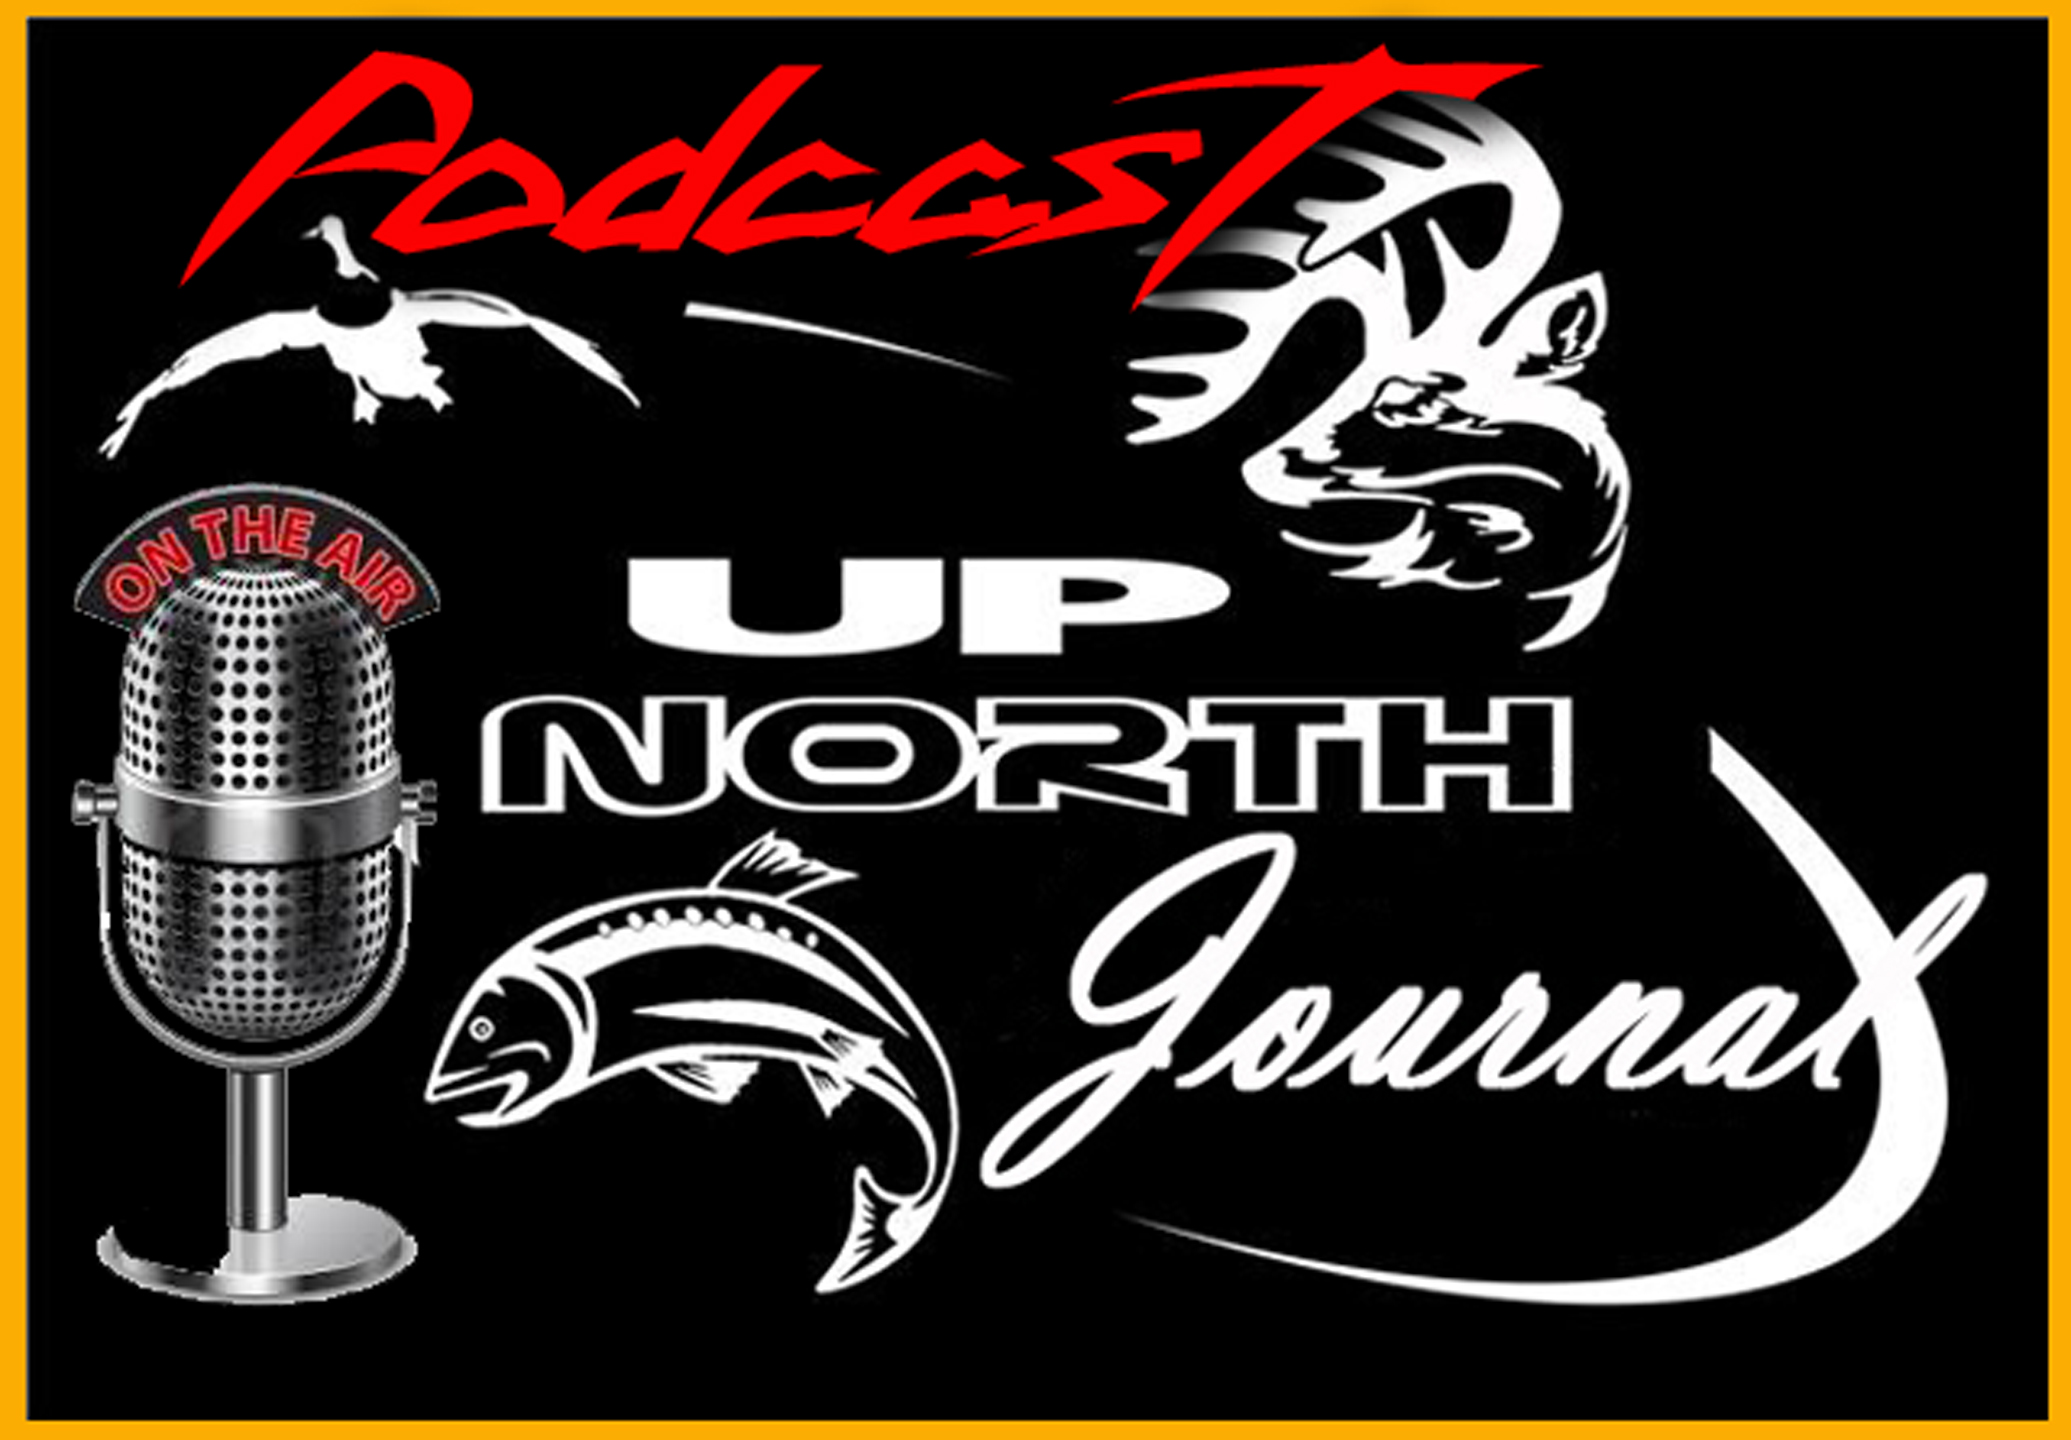 Up North Journal Podcast show art